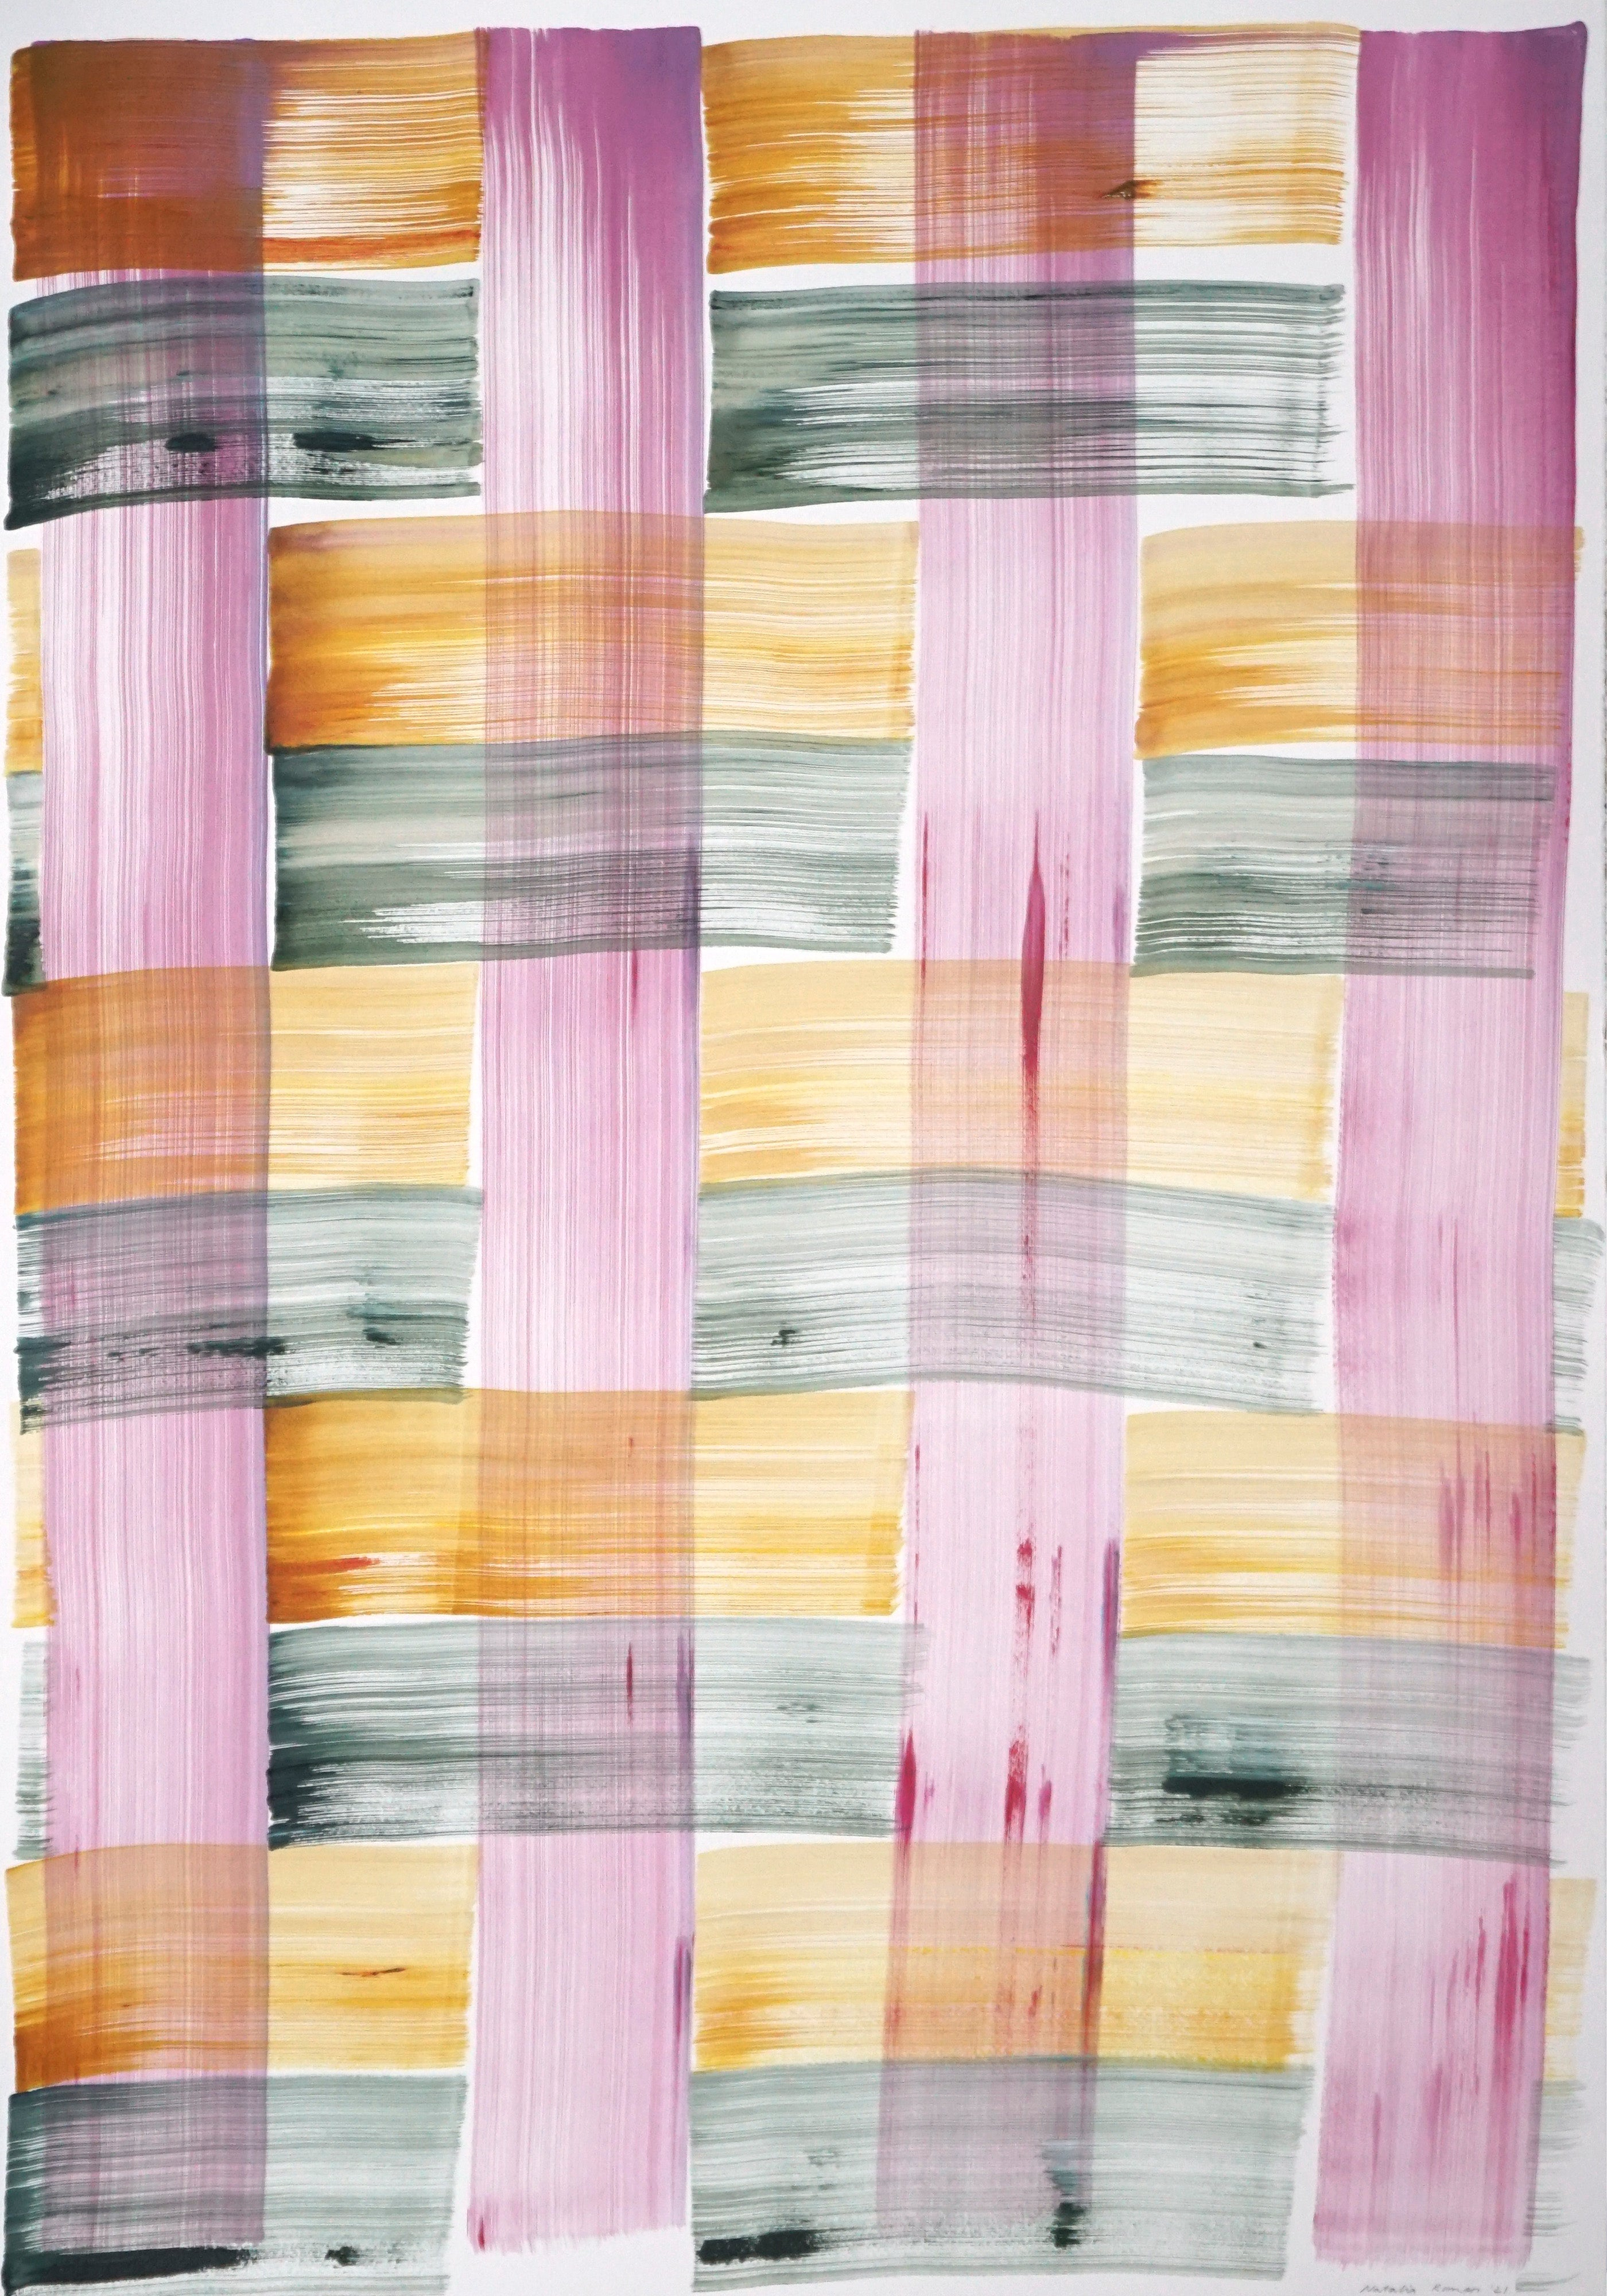 Modern Painting of Abstract Grid Warm Tones on Paper, Colorful Brushstrokes 2021